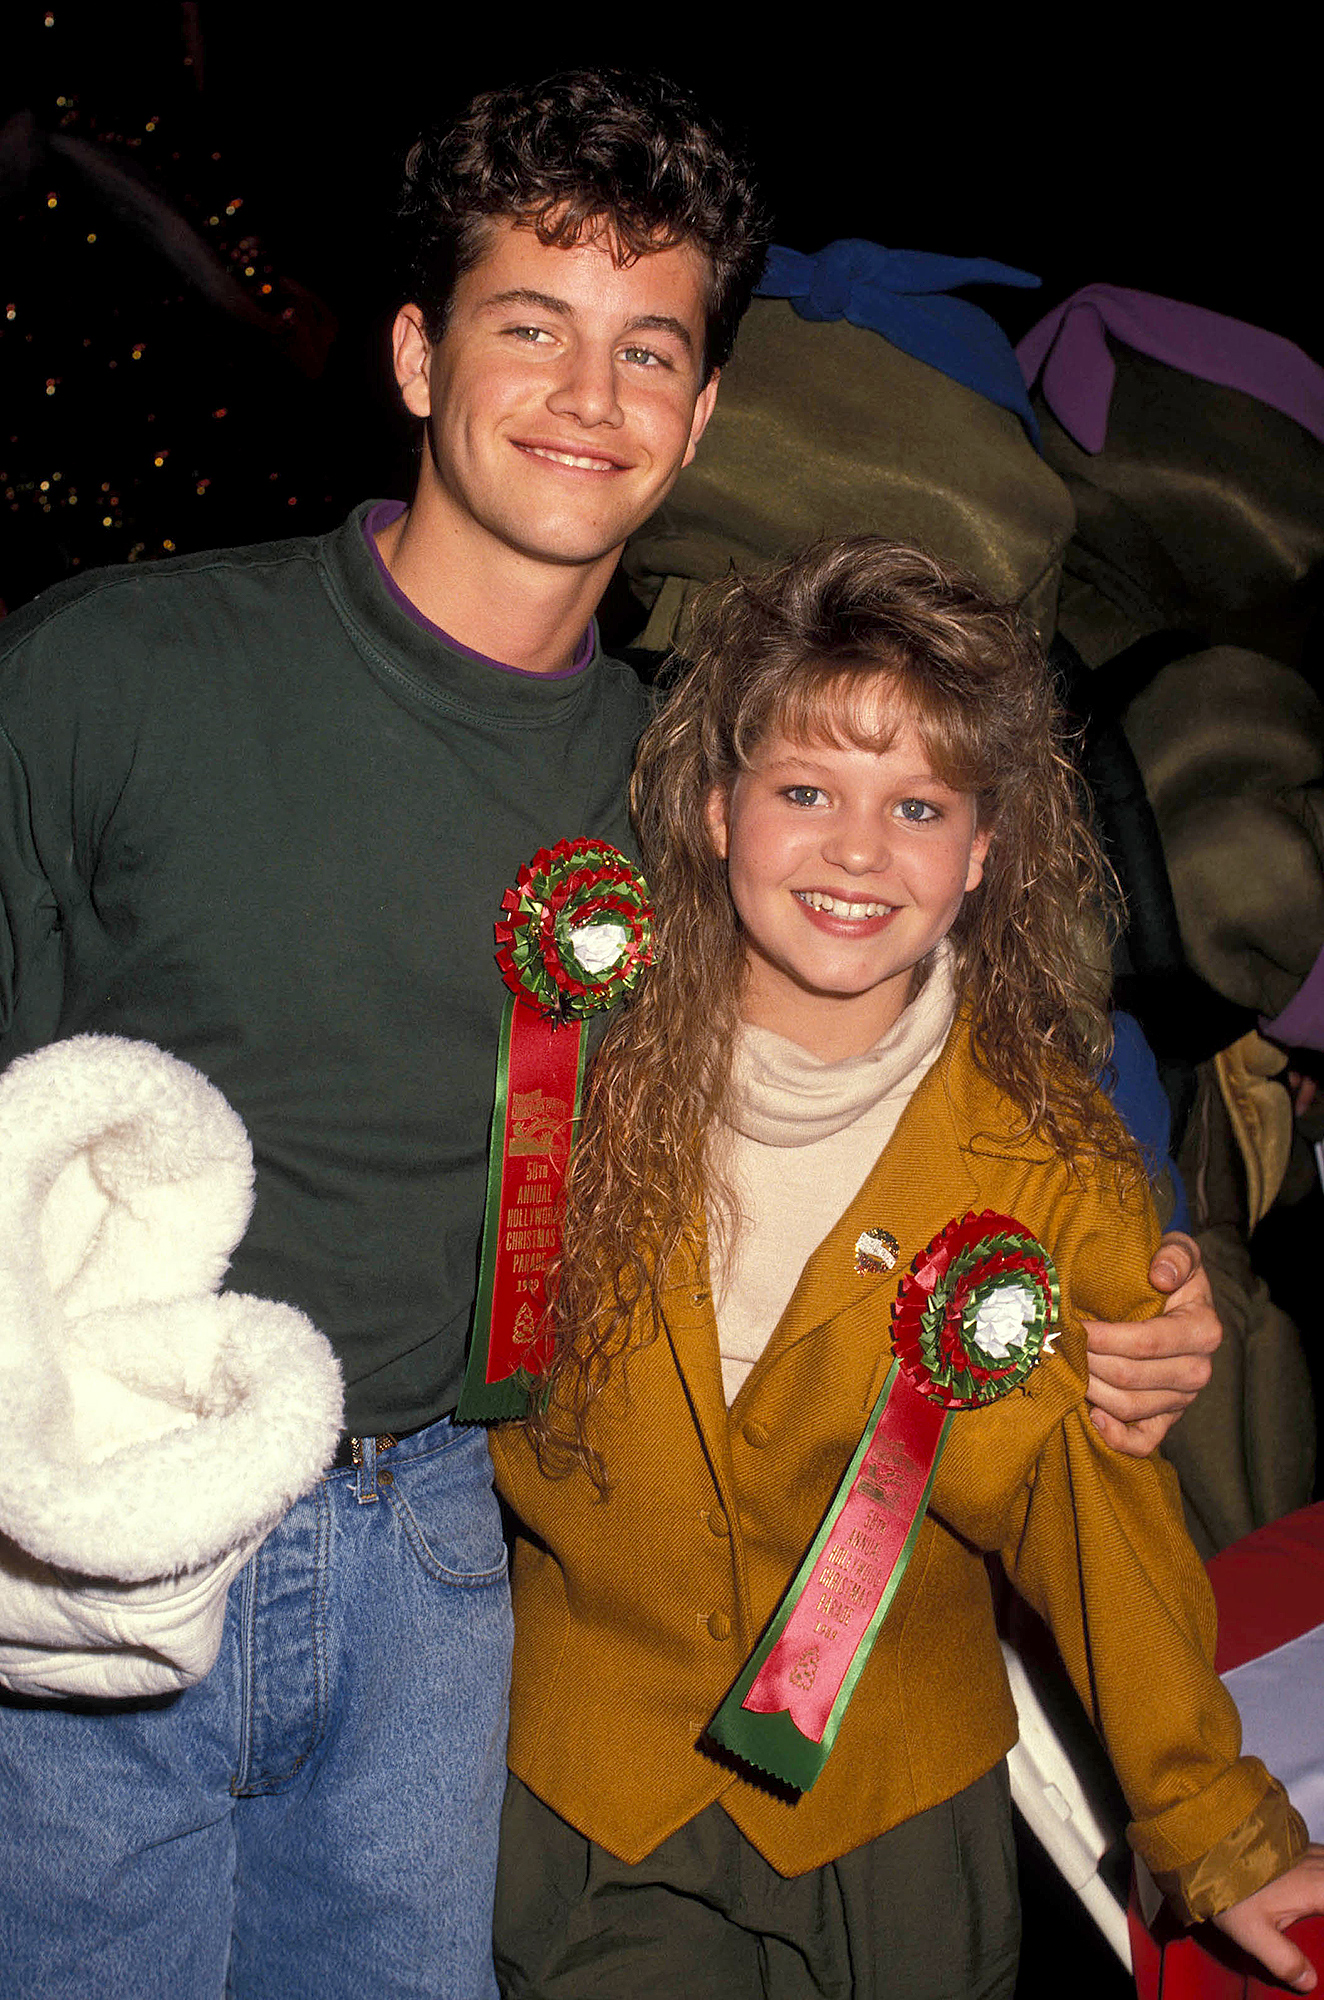 Full House! Candace Cameron Bure, Brother Kirk Cameron's Family Album